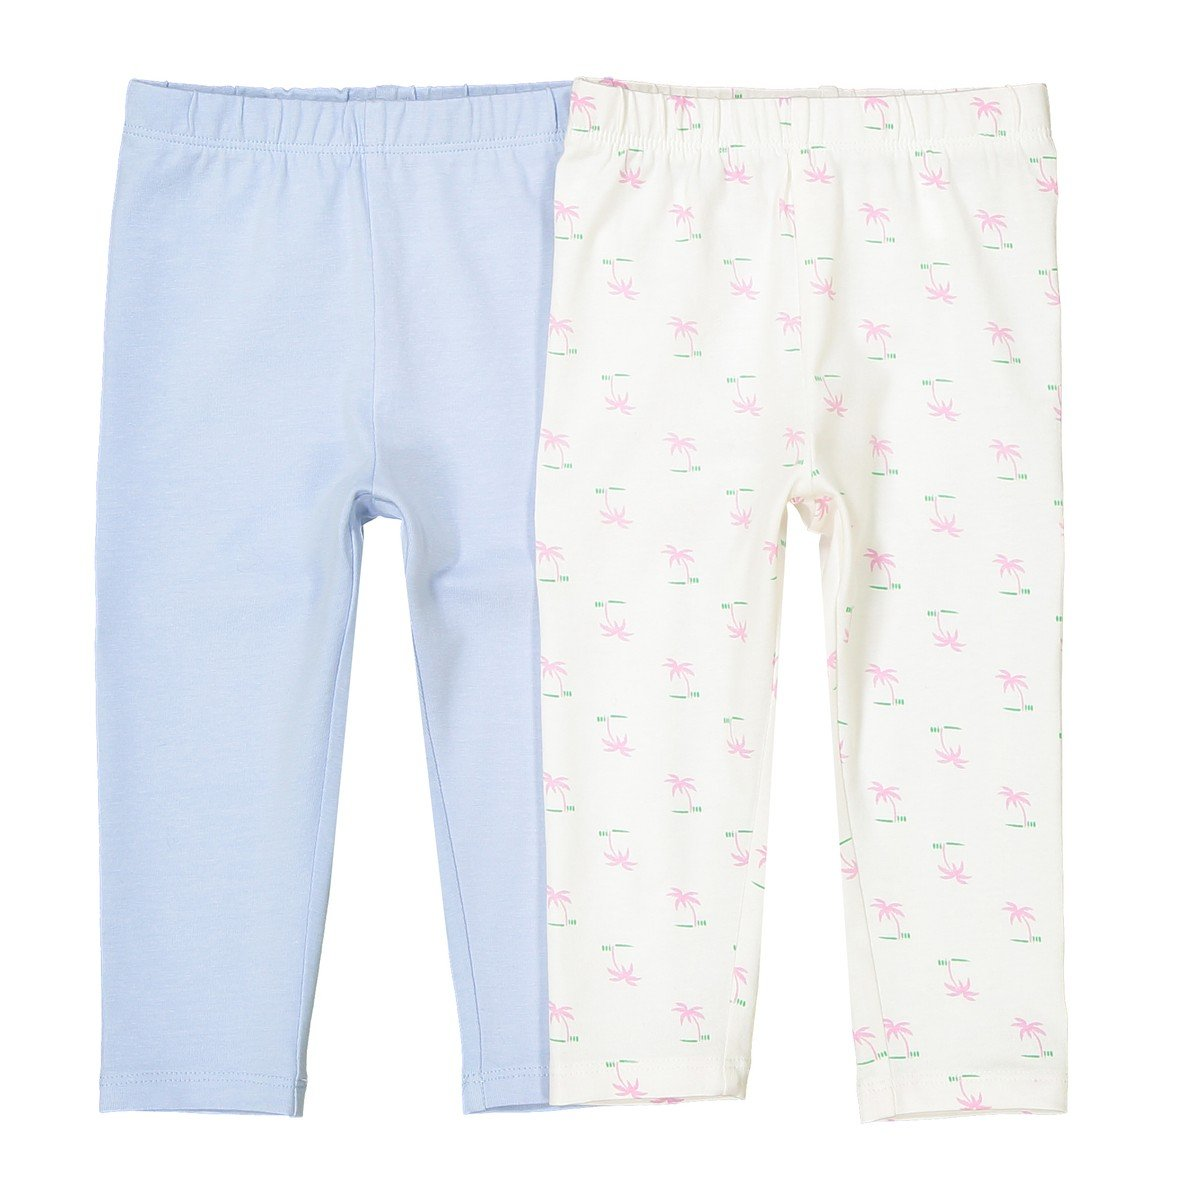 La Redoute Collections Big Girls Pack of 2 Stretch Cotton Leggings, 1 Month-3 Years White Size 3 Months - 23 in.